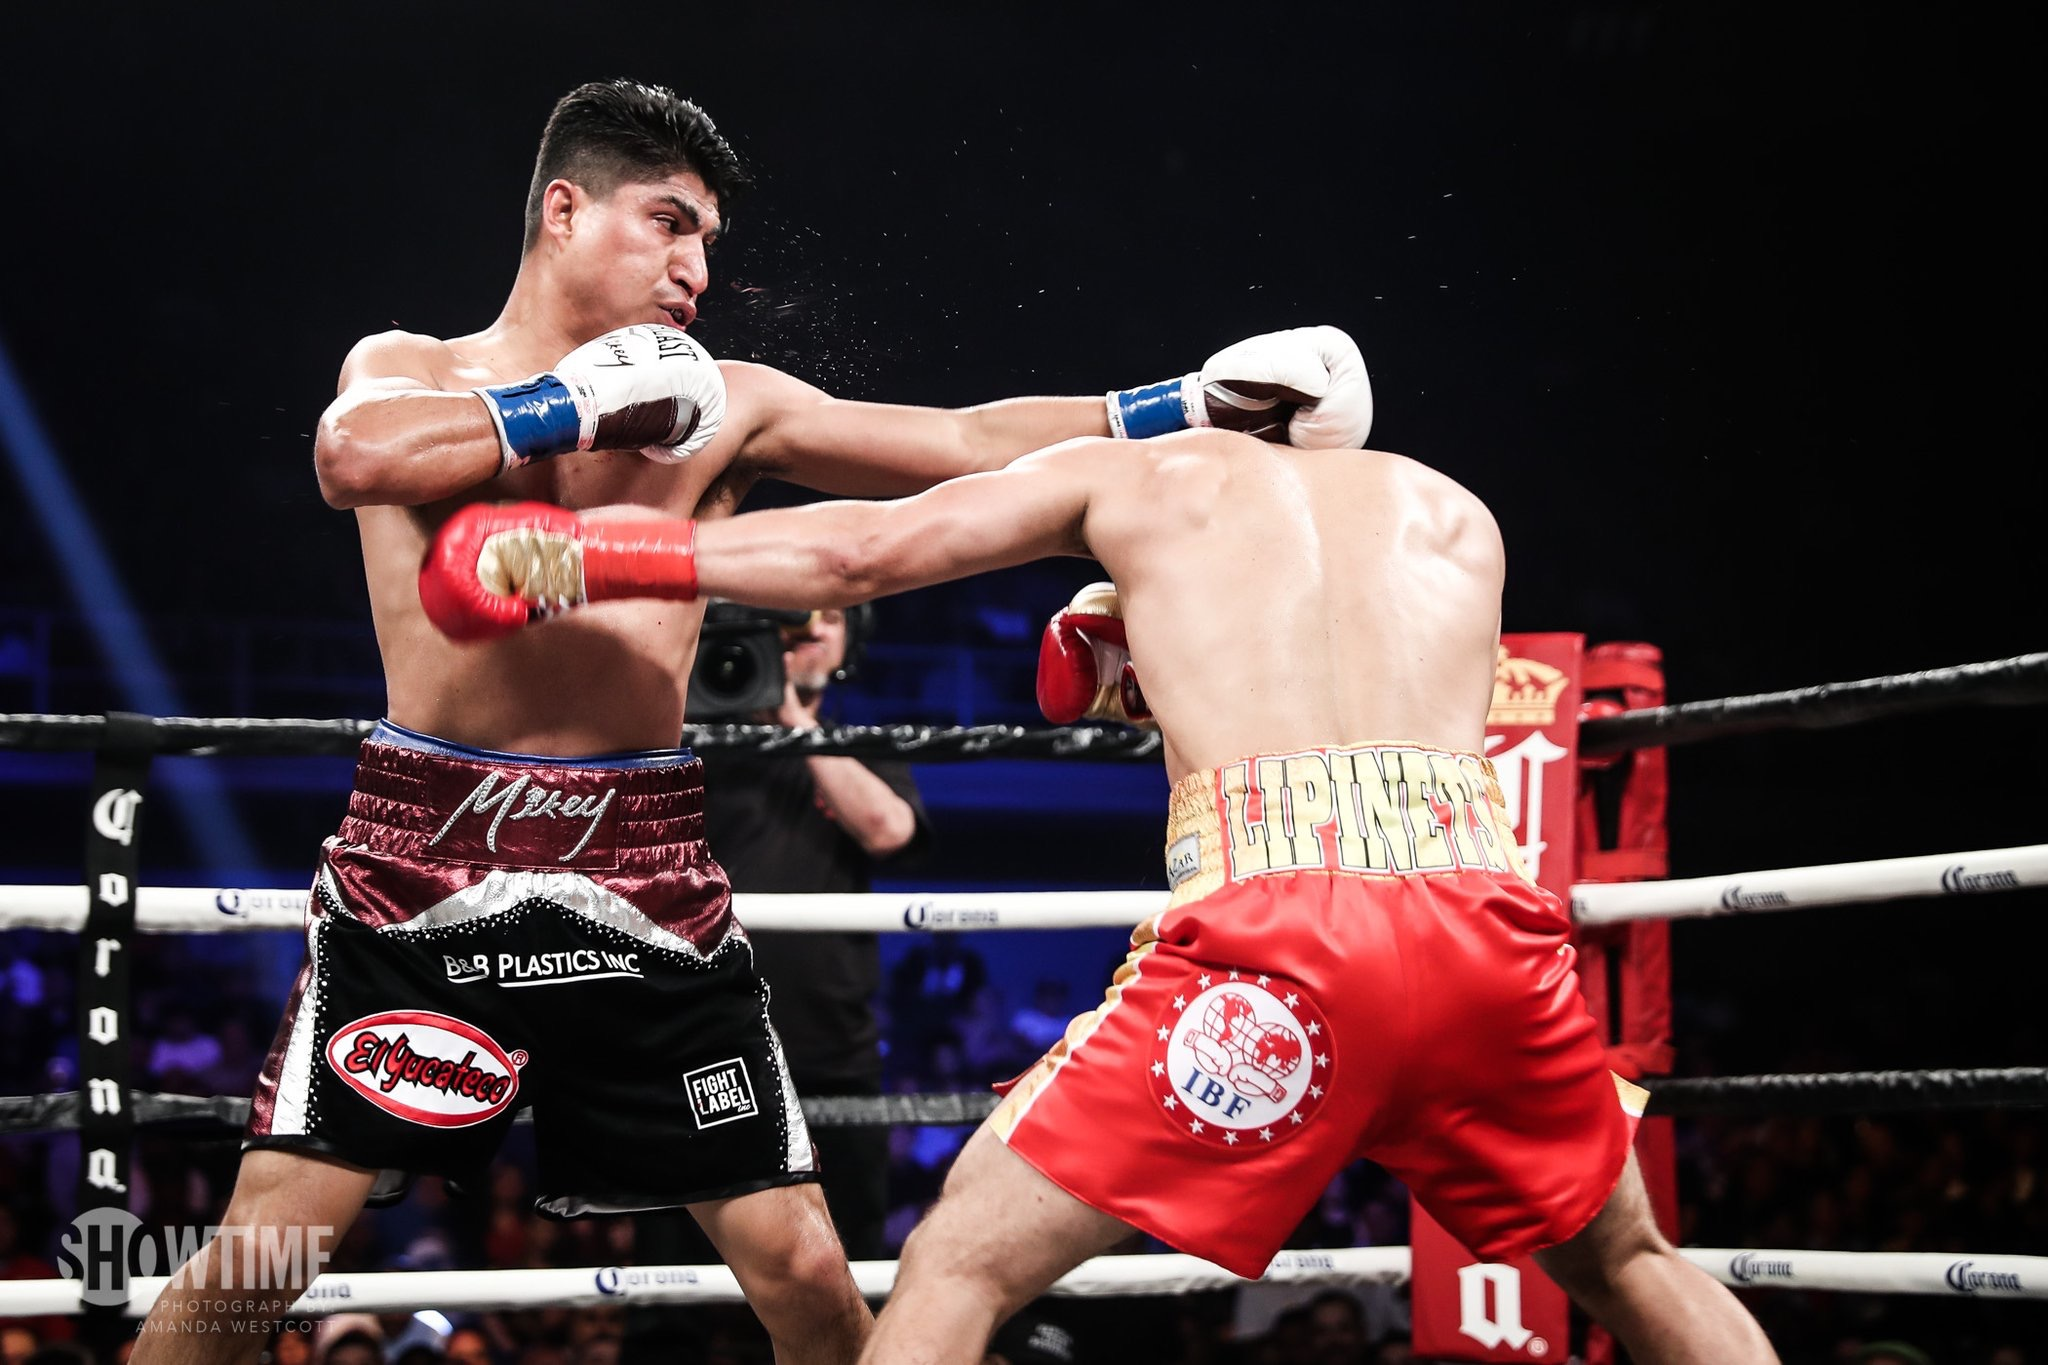 Mikey Garcia vs. Robert Easter Jr. averages 680,000 viewers on Showtime